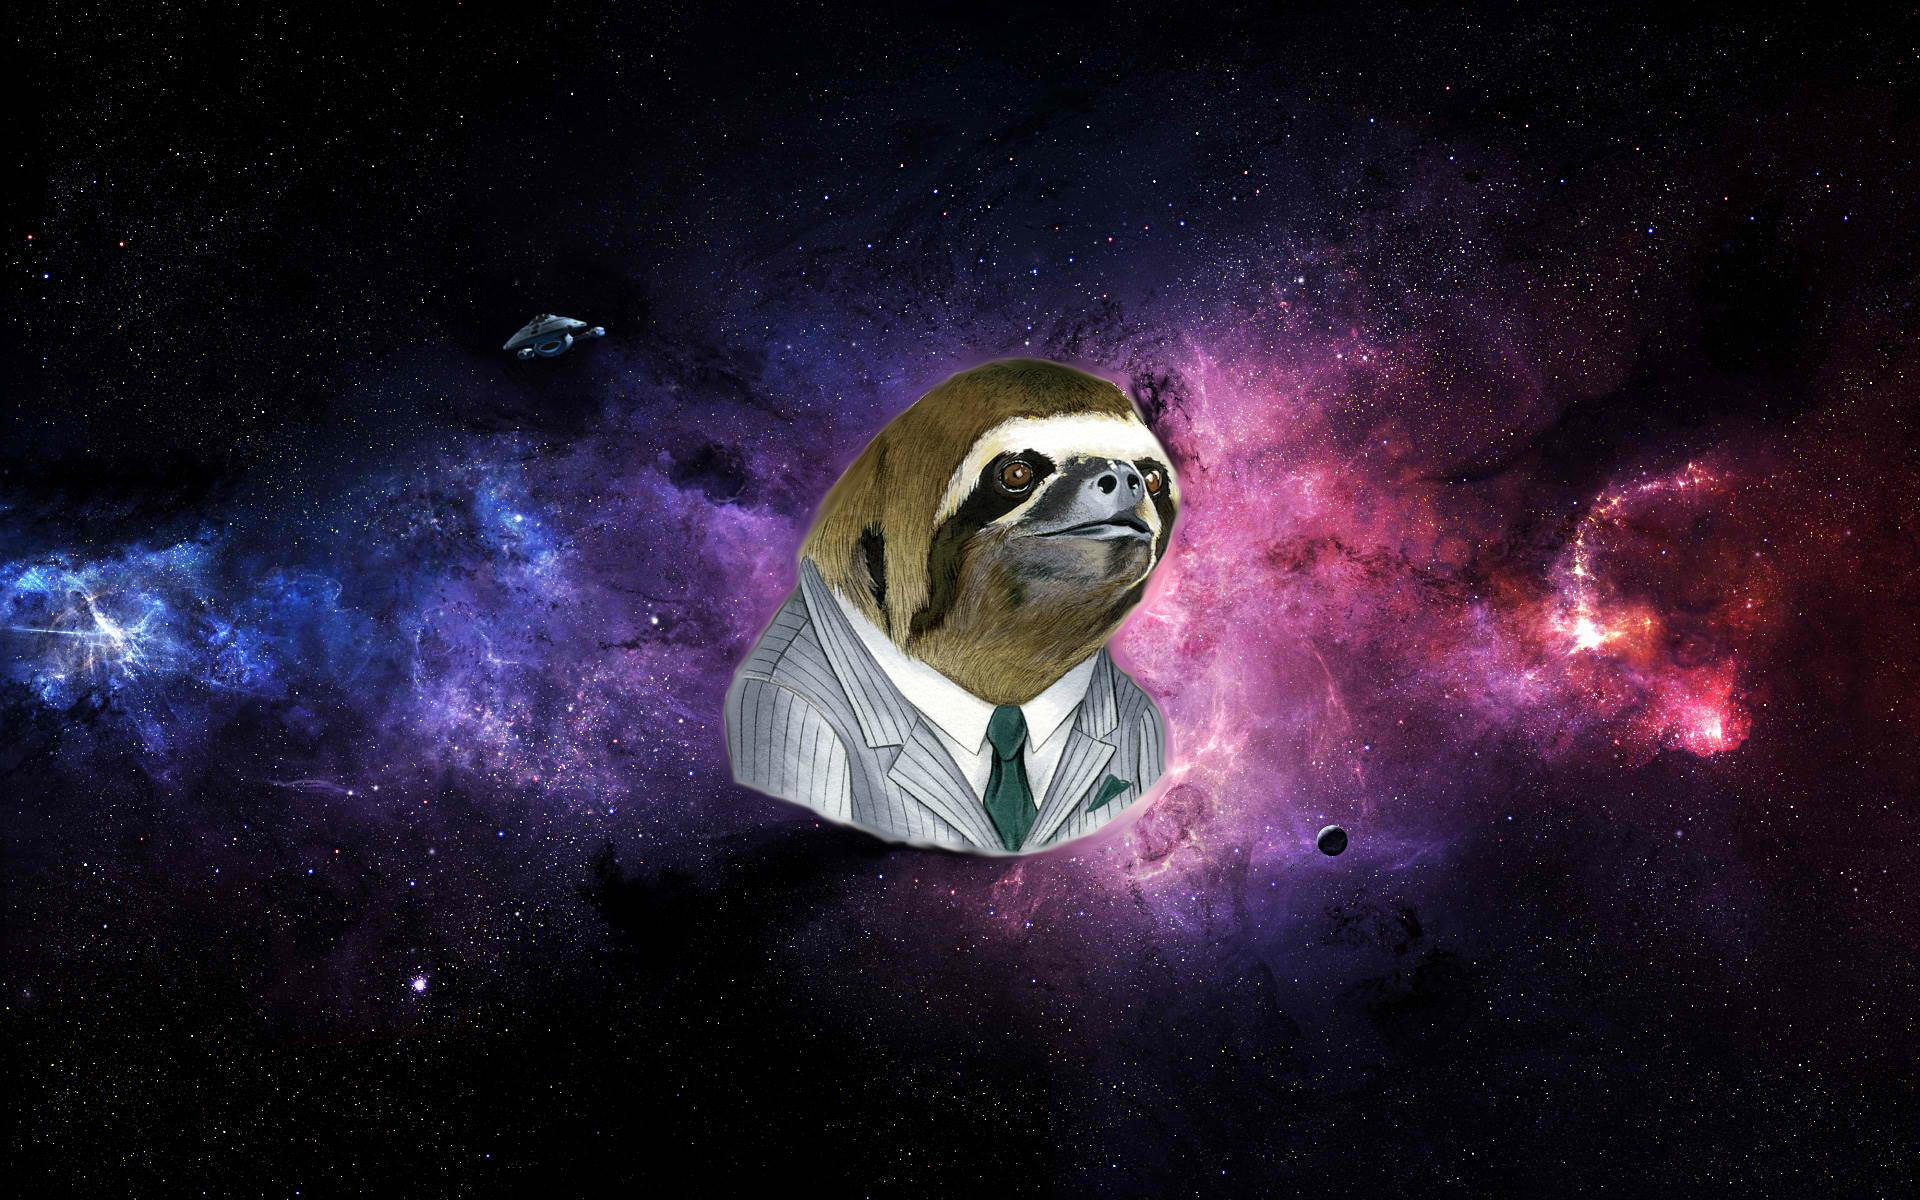 Space Sloth wallpaper made by my 13 year old cousin [1920x1200] 1920x1200